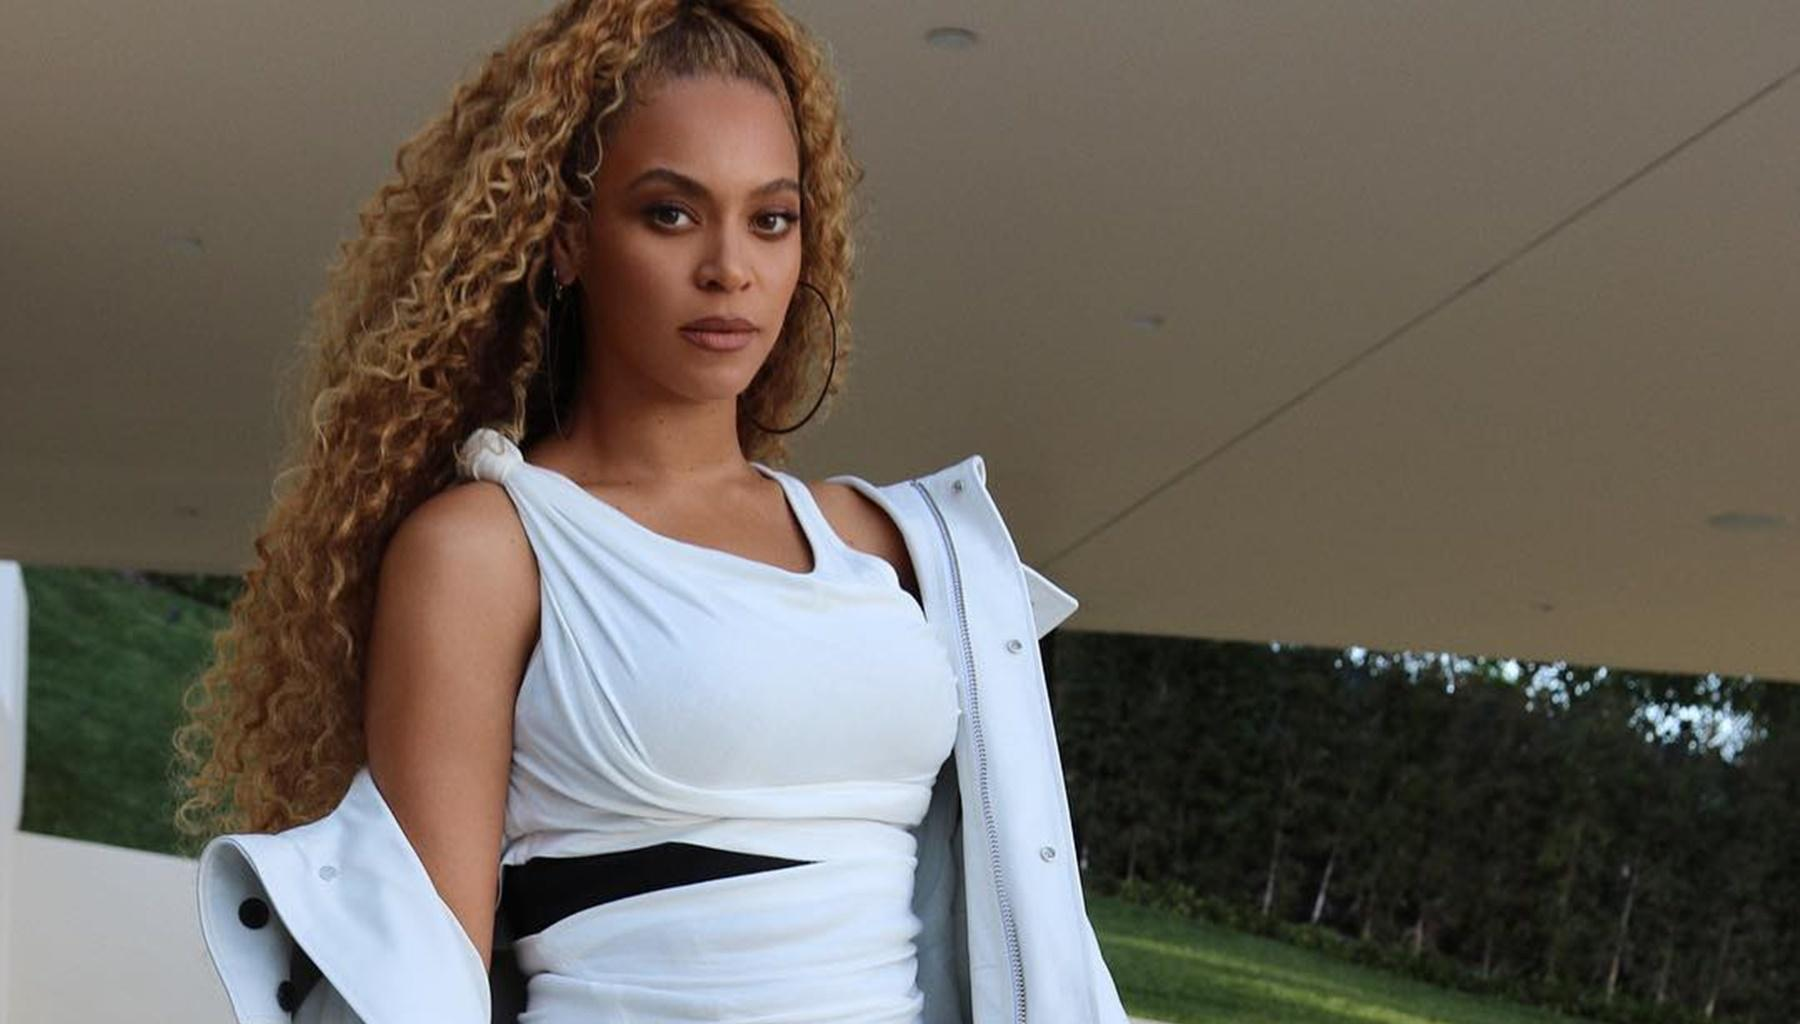 Beyoncé Got Turned Down By Michael Ealy For This Reason -- 'The Intruder' Actor Gets Applauded For Knowing His Self-Worth